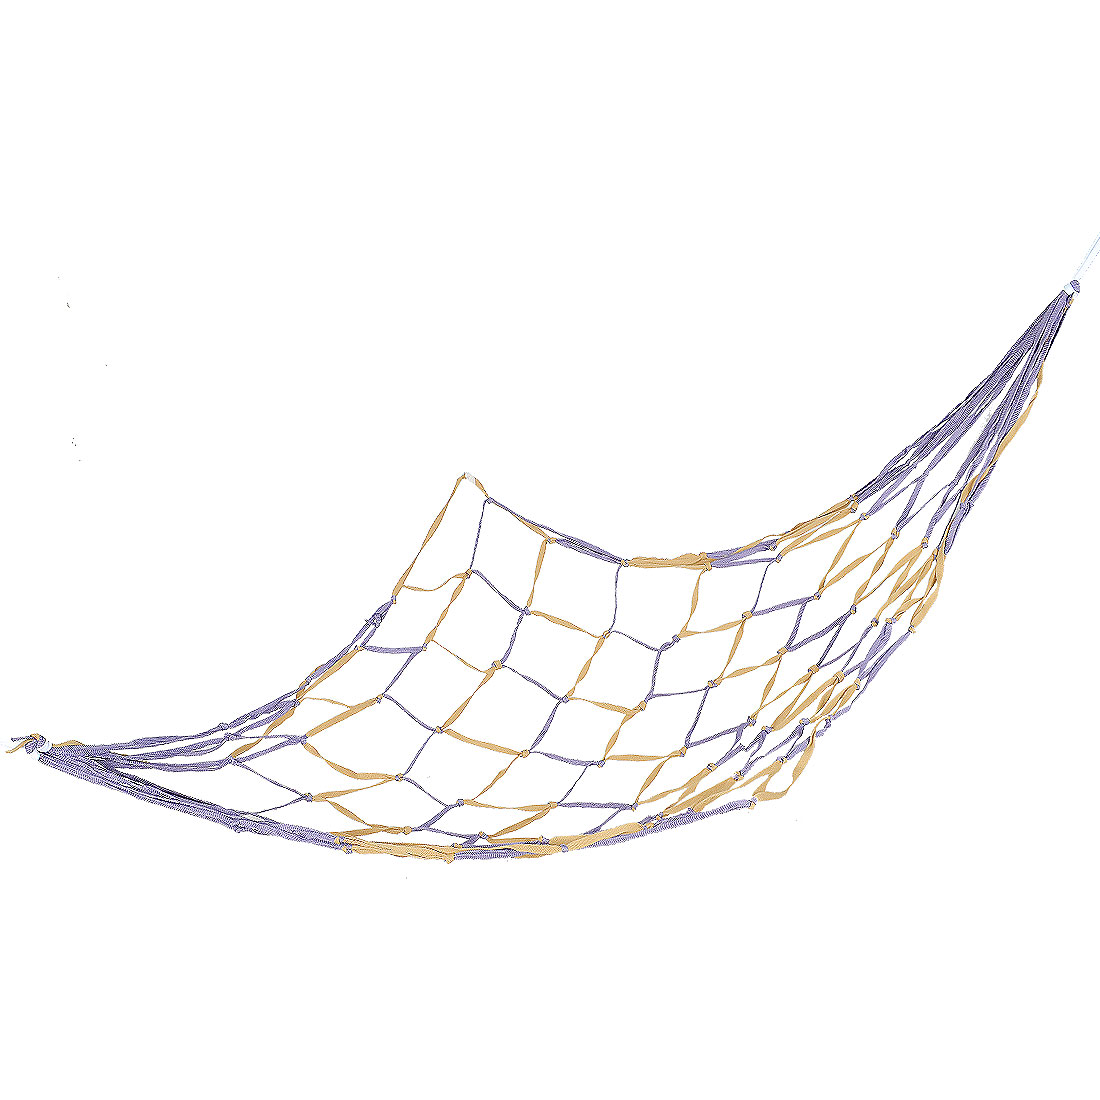 Travel Mesh Hang Bed Garden Camping Yard Net Outdoor Hammock